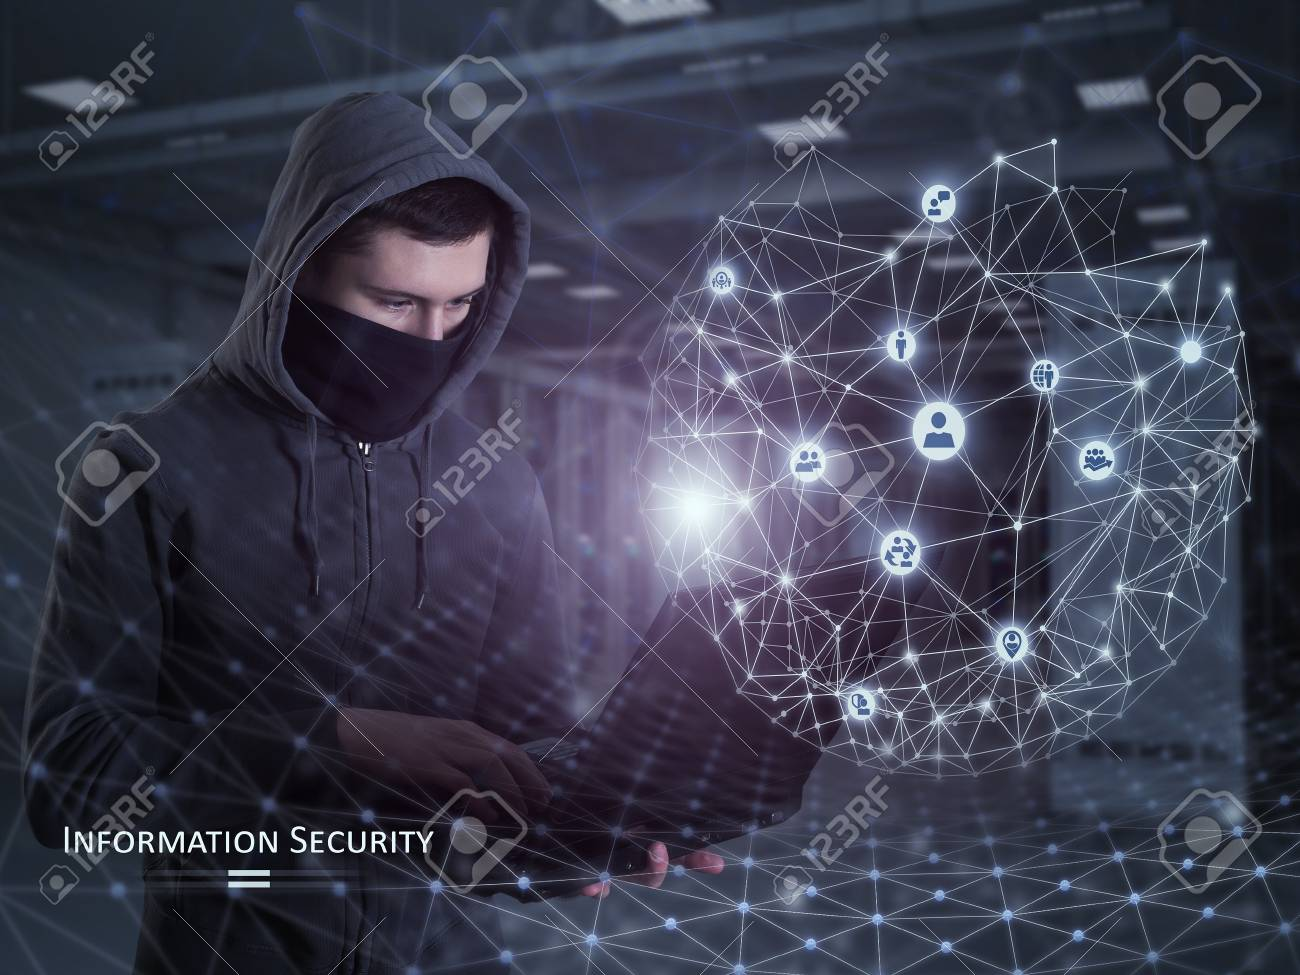 Information Security Concept - 96938633